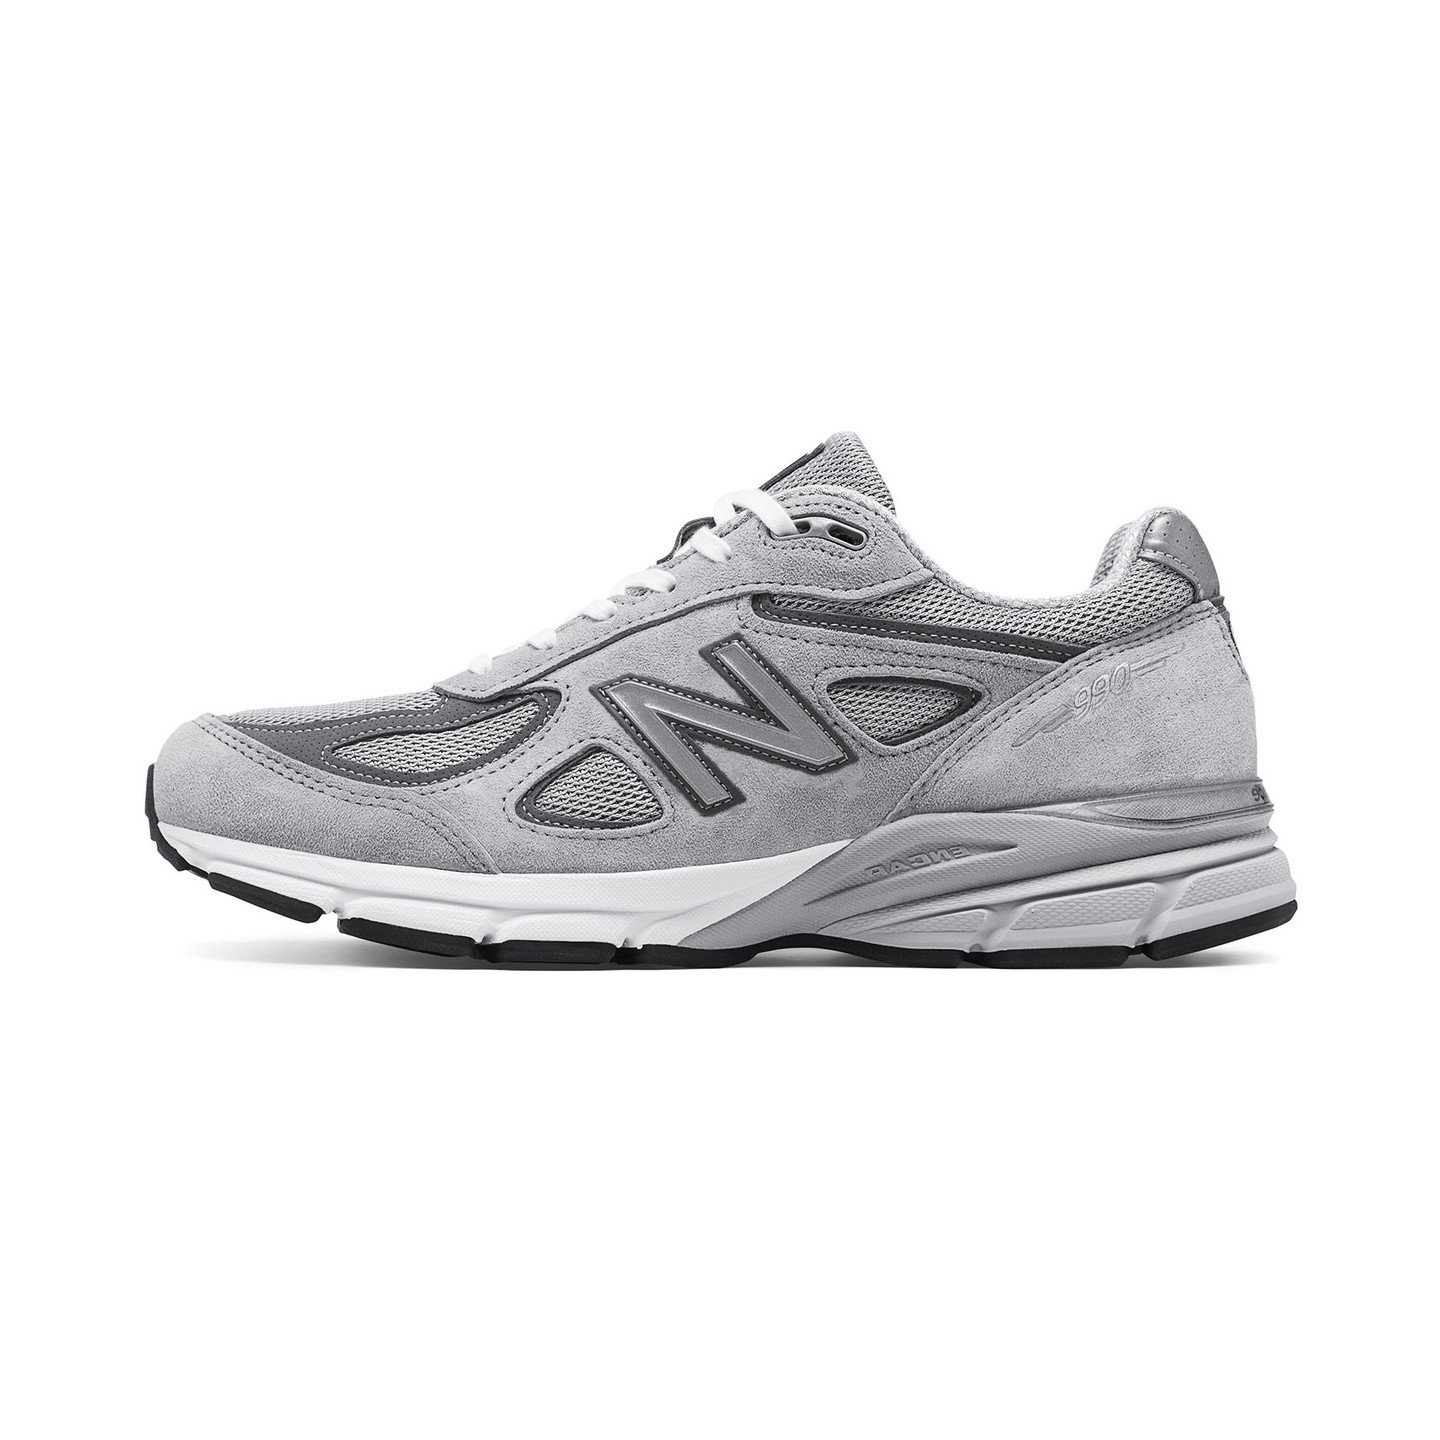 New Balance M990 V4 - Made in USA Grey / Reflective Silver M990GL4